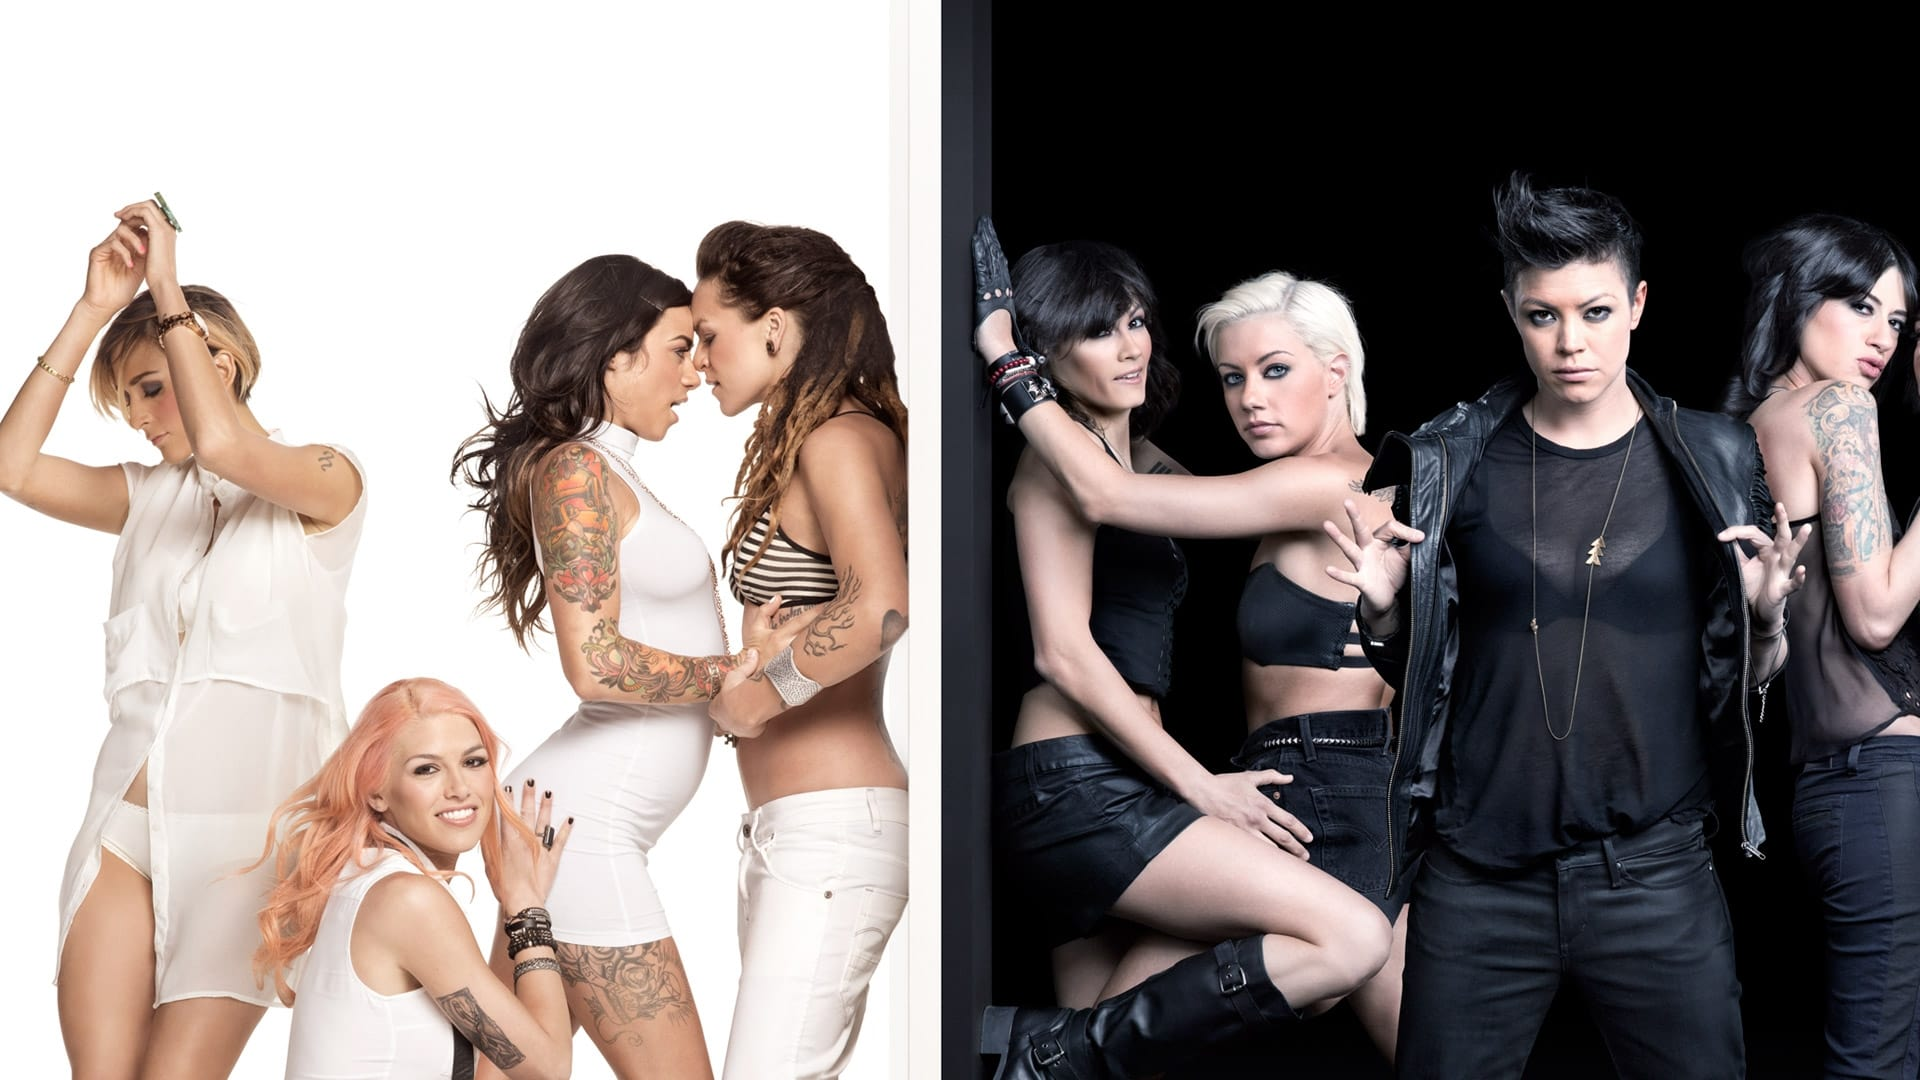 the real l word season 3 episode 2 tvtraxx